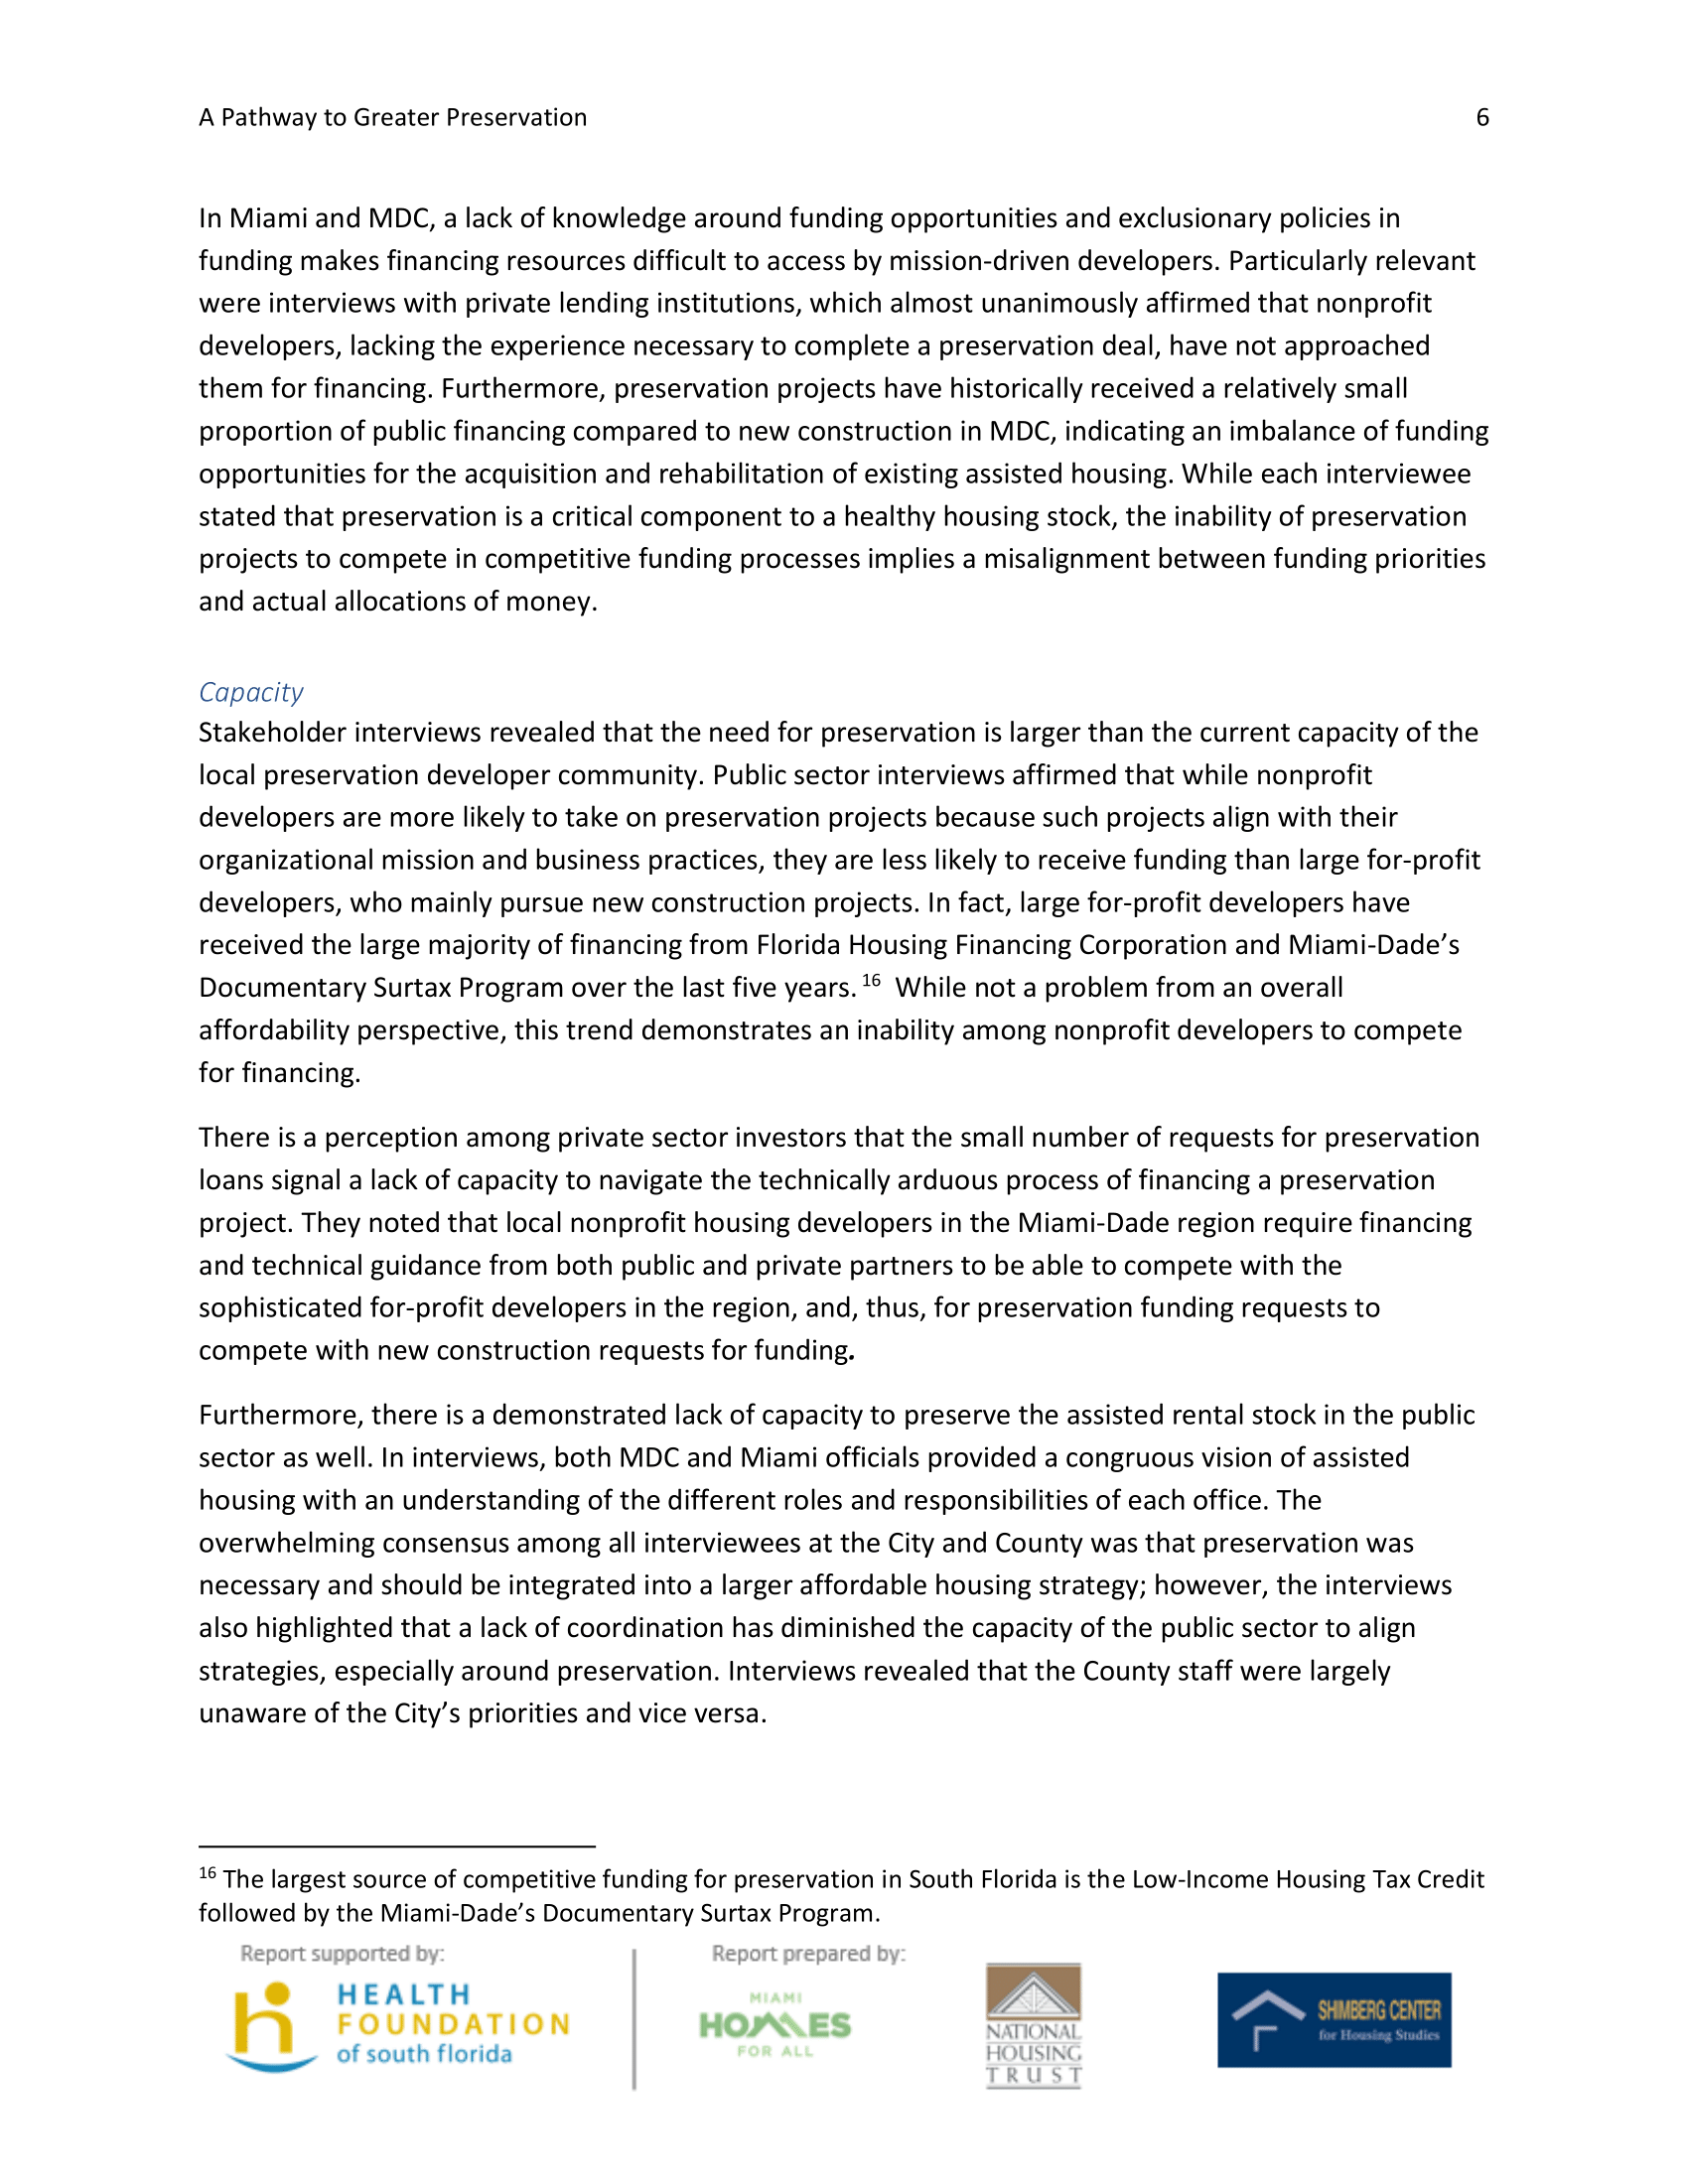 A Pathway to Greater Preservation - February 2018-14.png